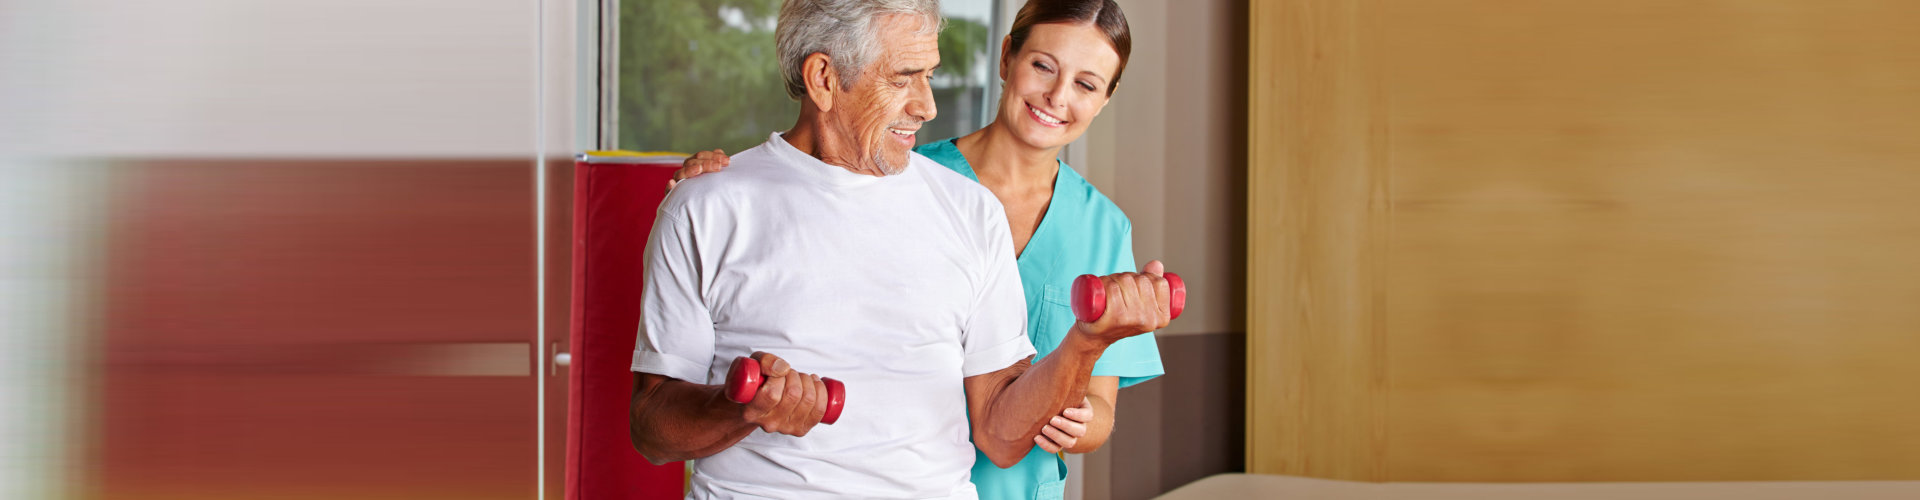 physiotherapist assisting senior man exercising with dumbbells